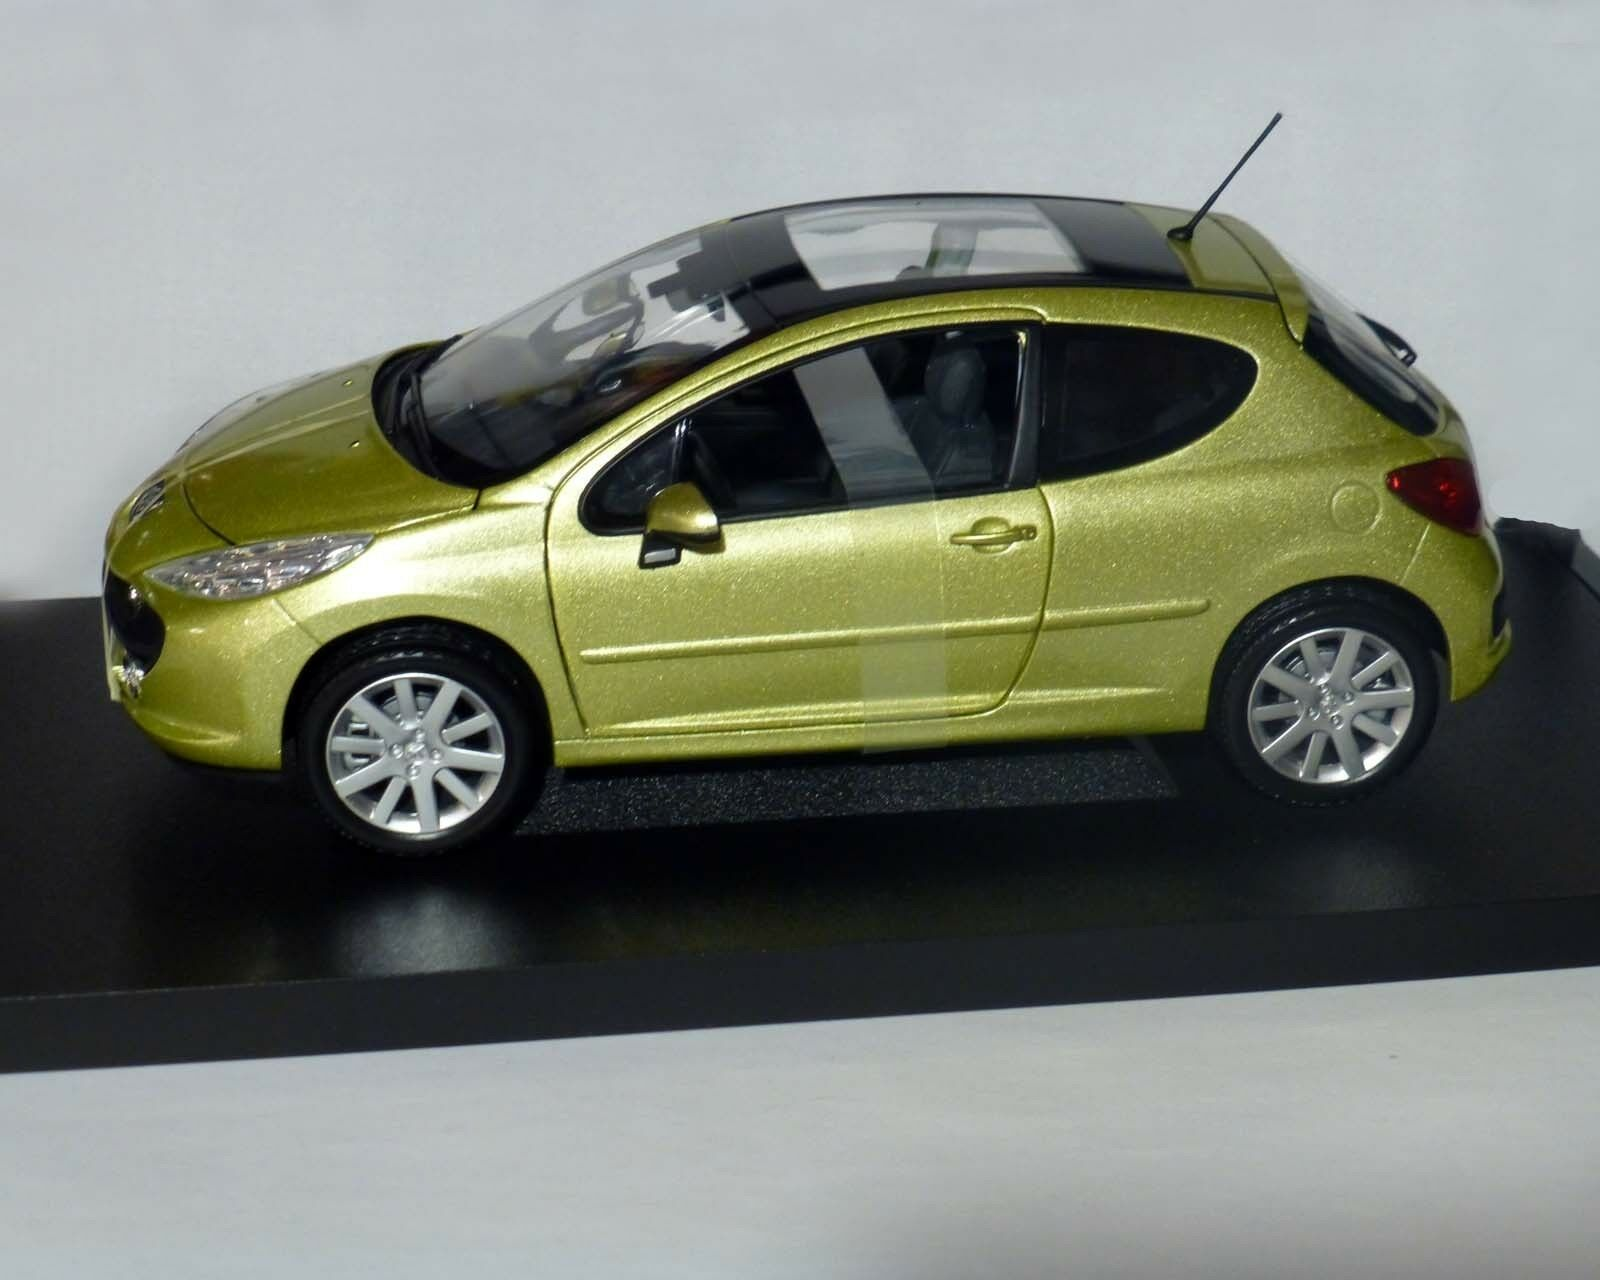 Peugeot 207 Yellow Metallic - 1 18, Norev